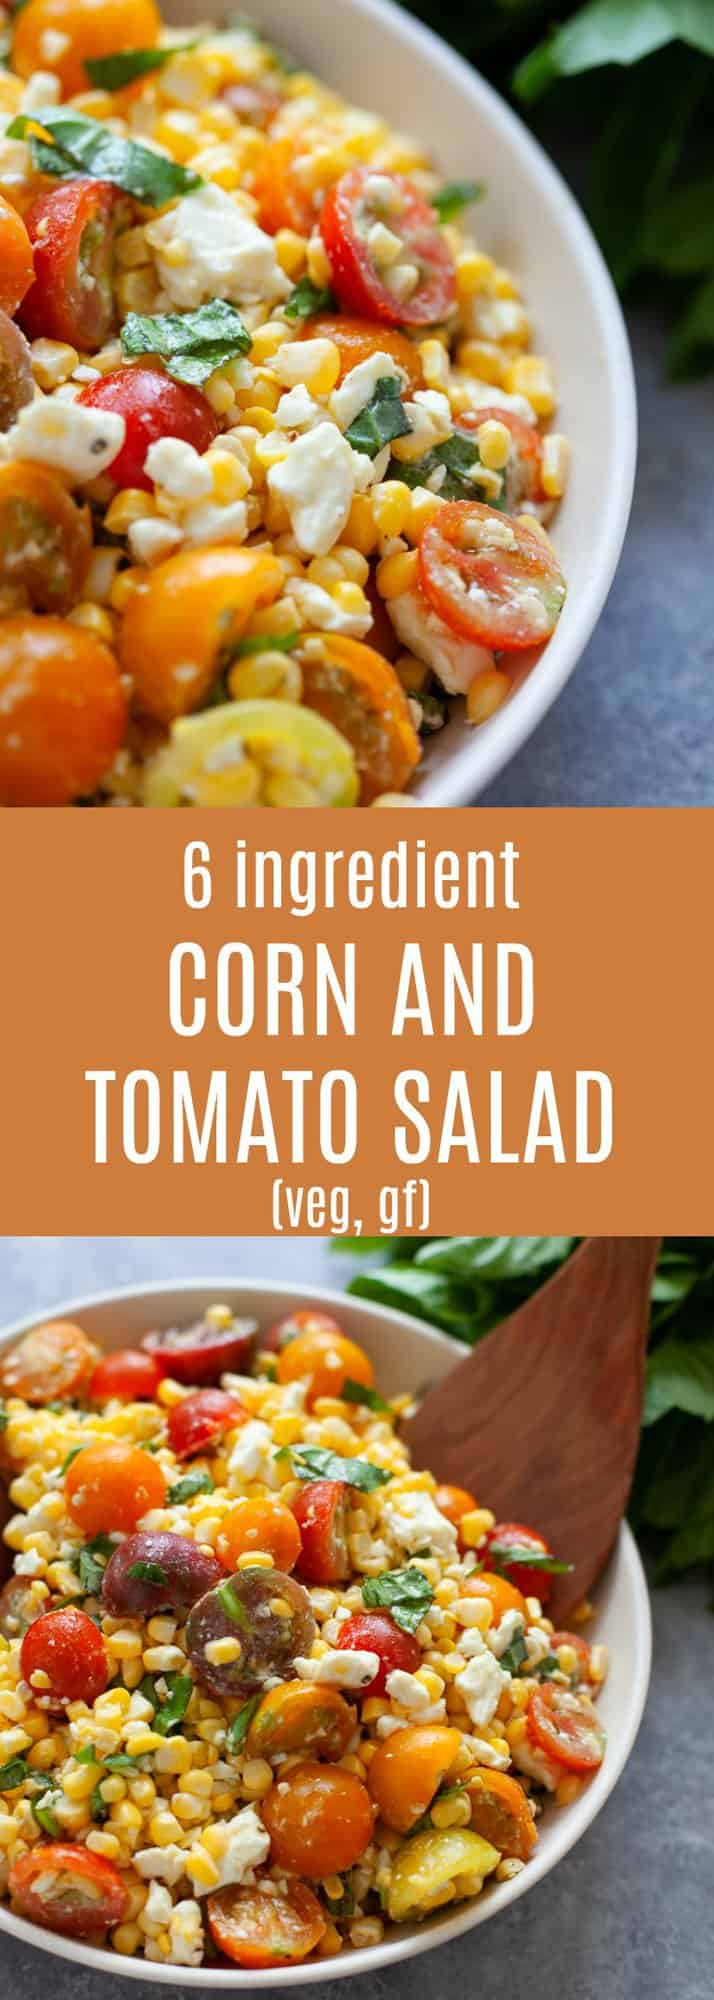 A refreshing and satisfying salad that only calls for a handful of ingredients, this 6 ingredient corn and tomato salad is the perfect side dish for summer.